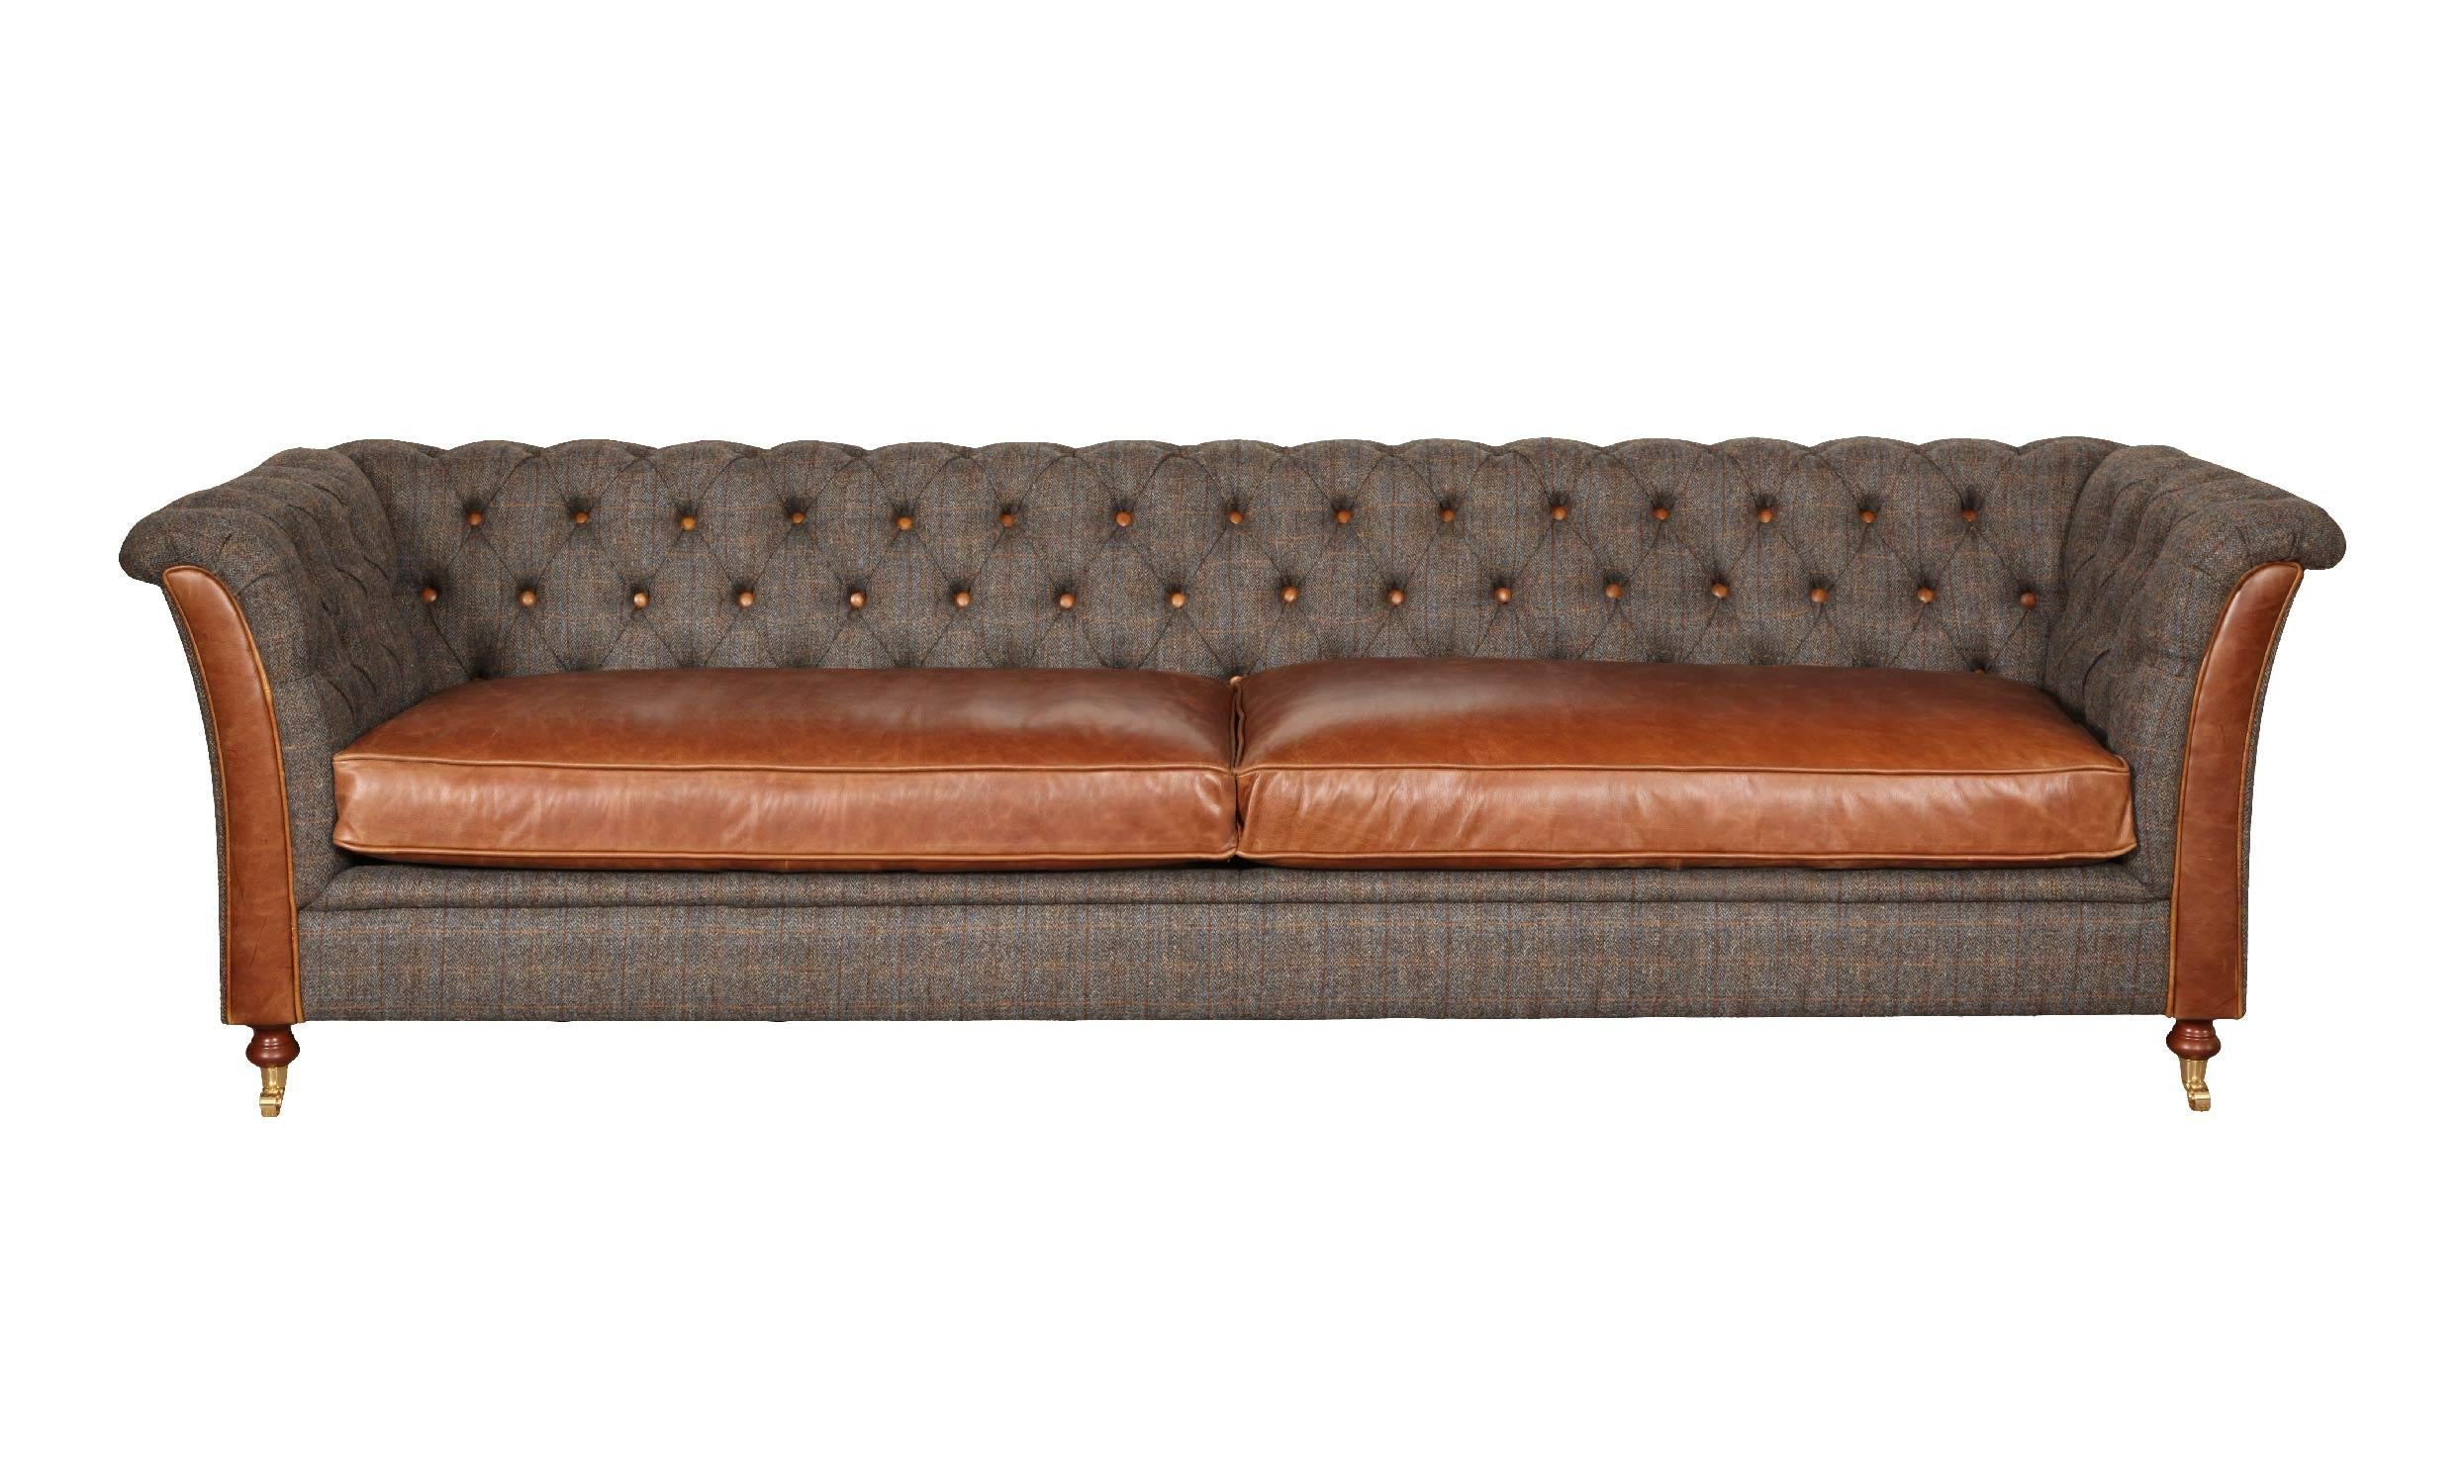 Granby Harris Tweed and Leather Sofas and Chairs.-harris tweed sofas-Against The Grain Furniture-4 Seater-Morland-Against The Grain Furniture